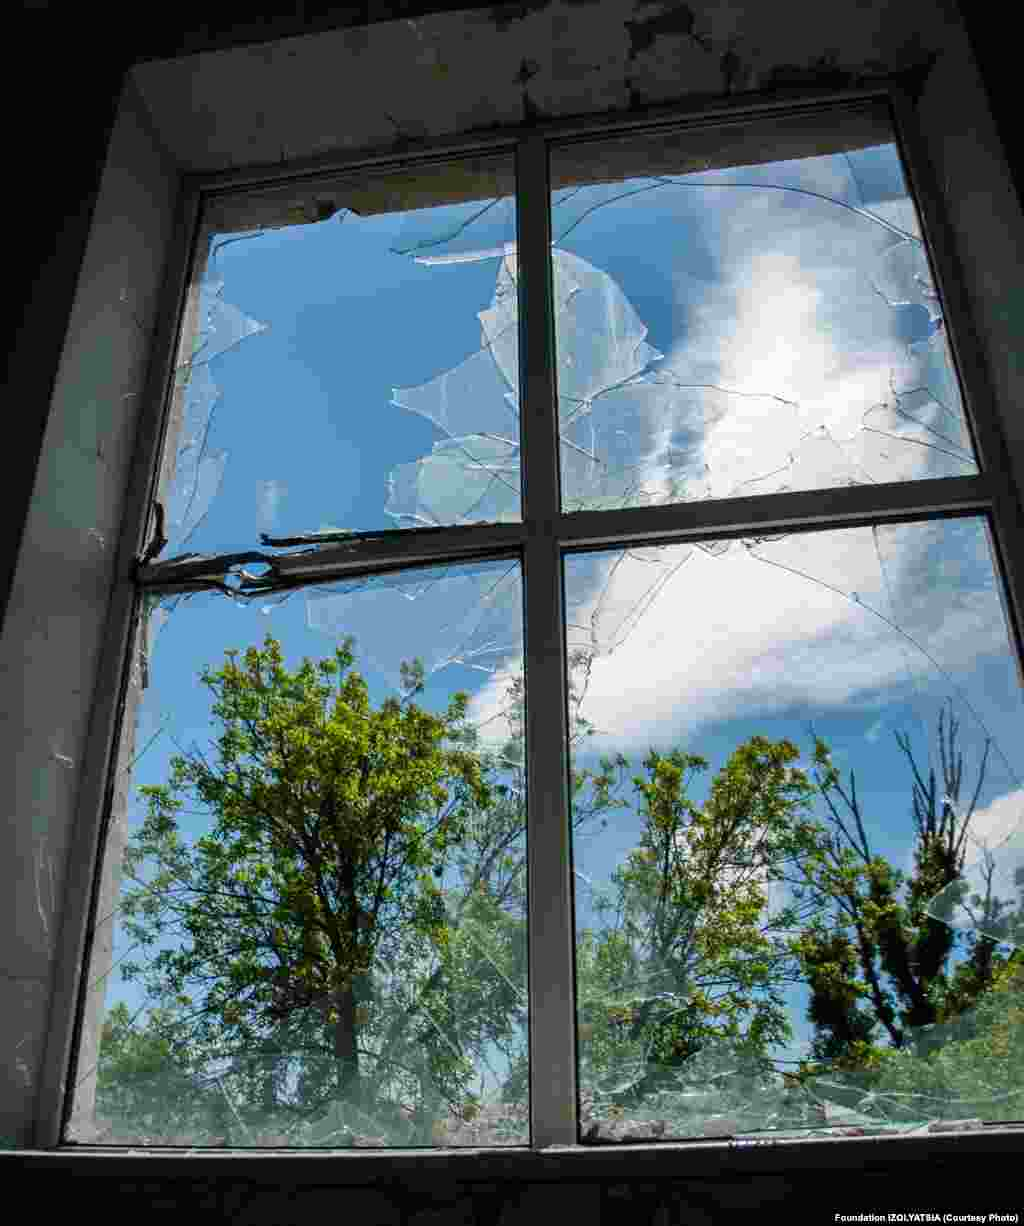 A window shattered by fighting